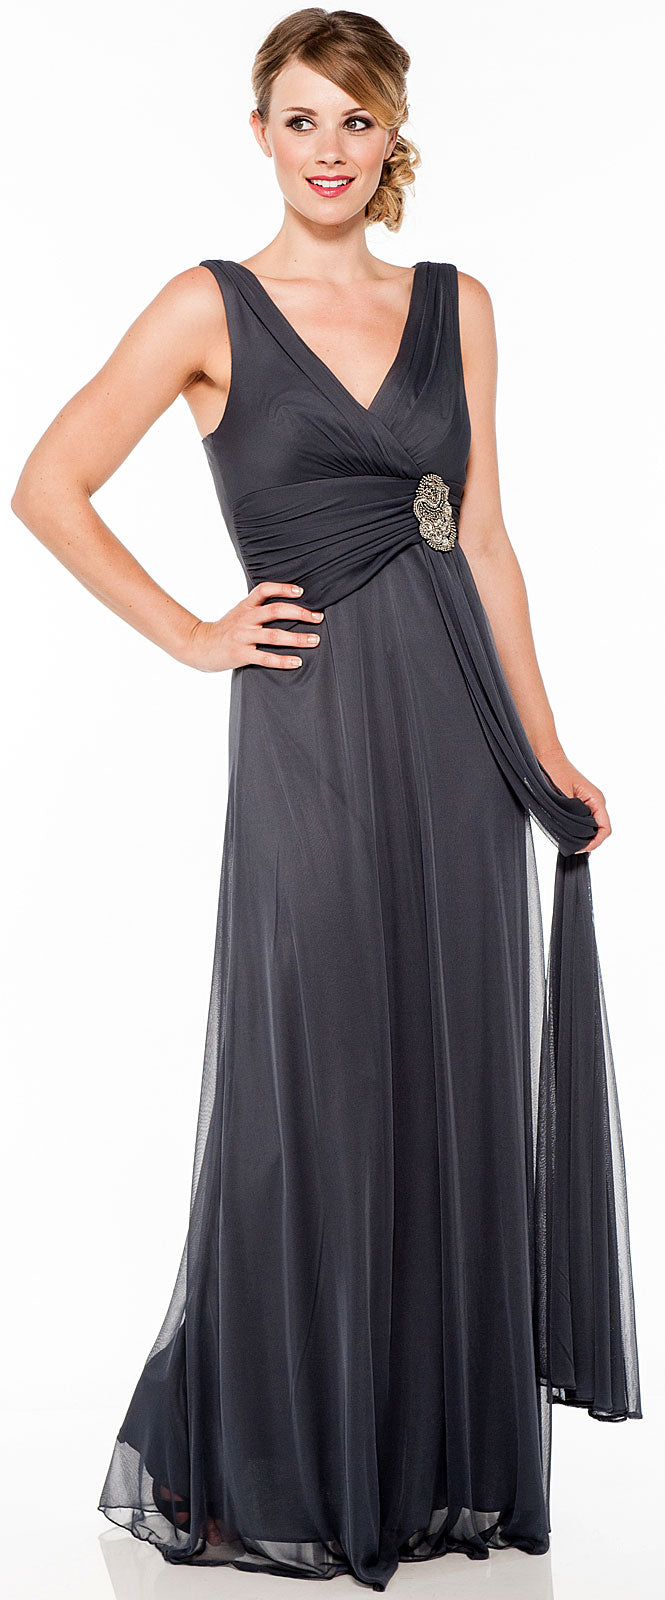 Main image of V Neck Ruched Waist With Sash Long Formal Dress